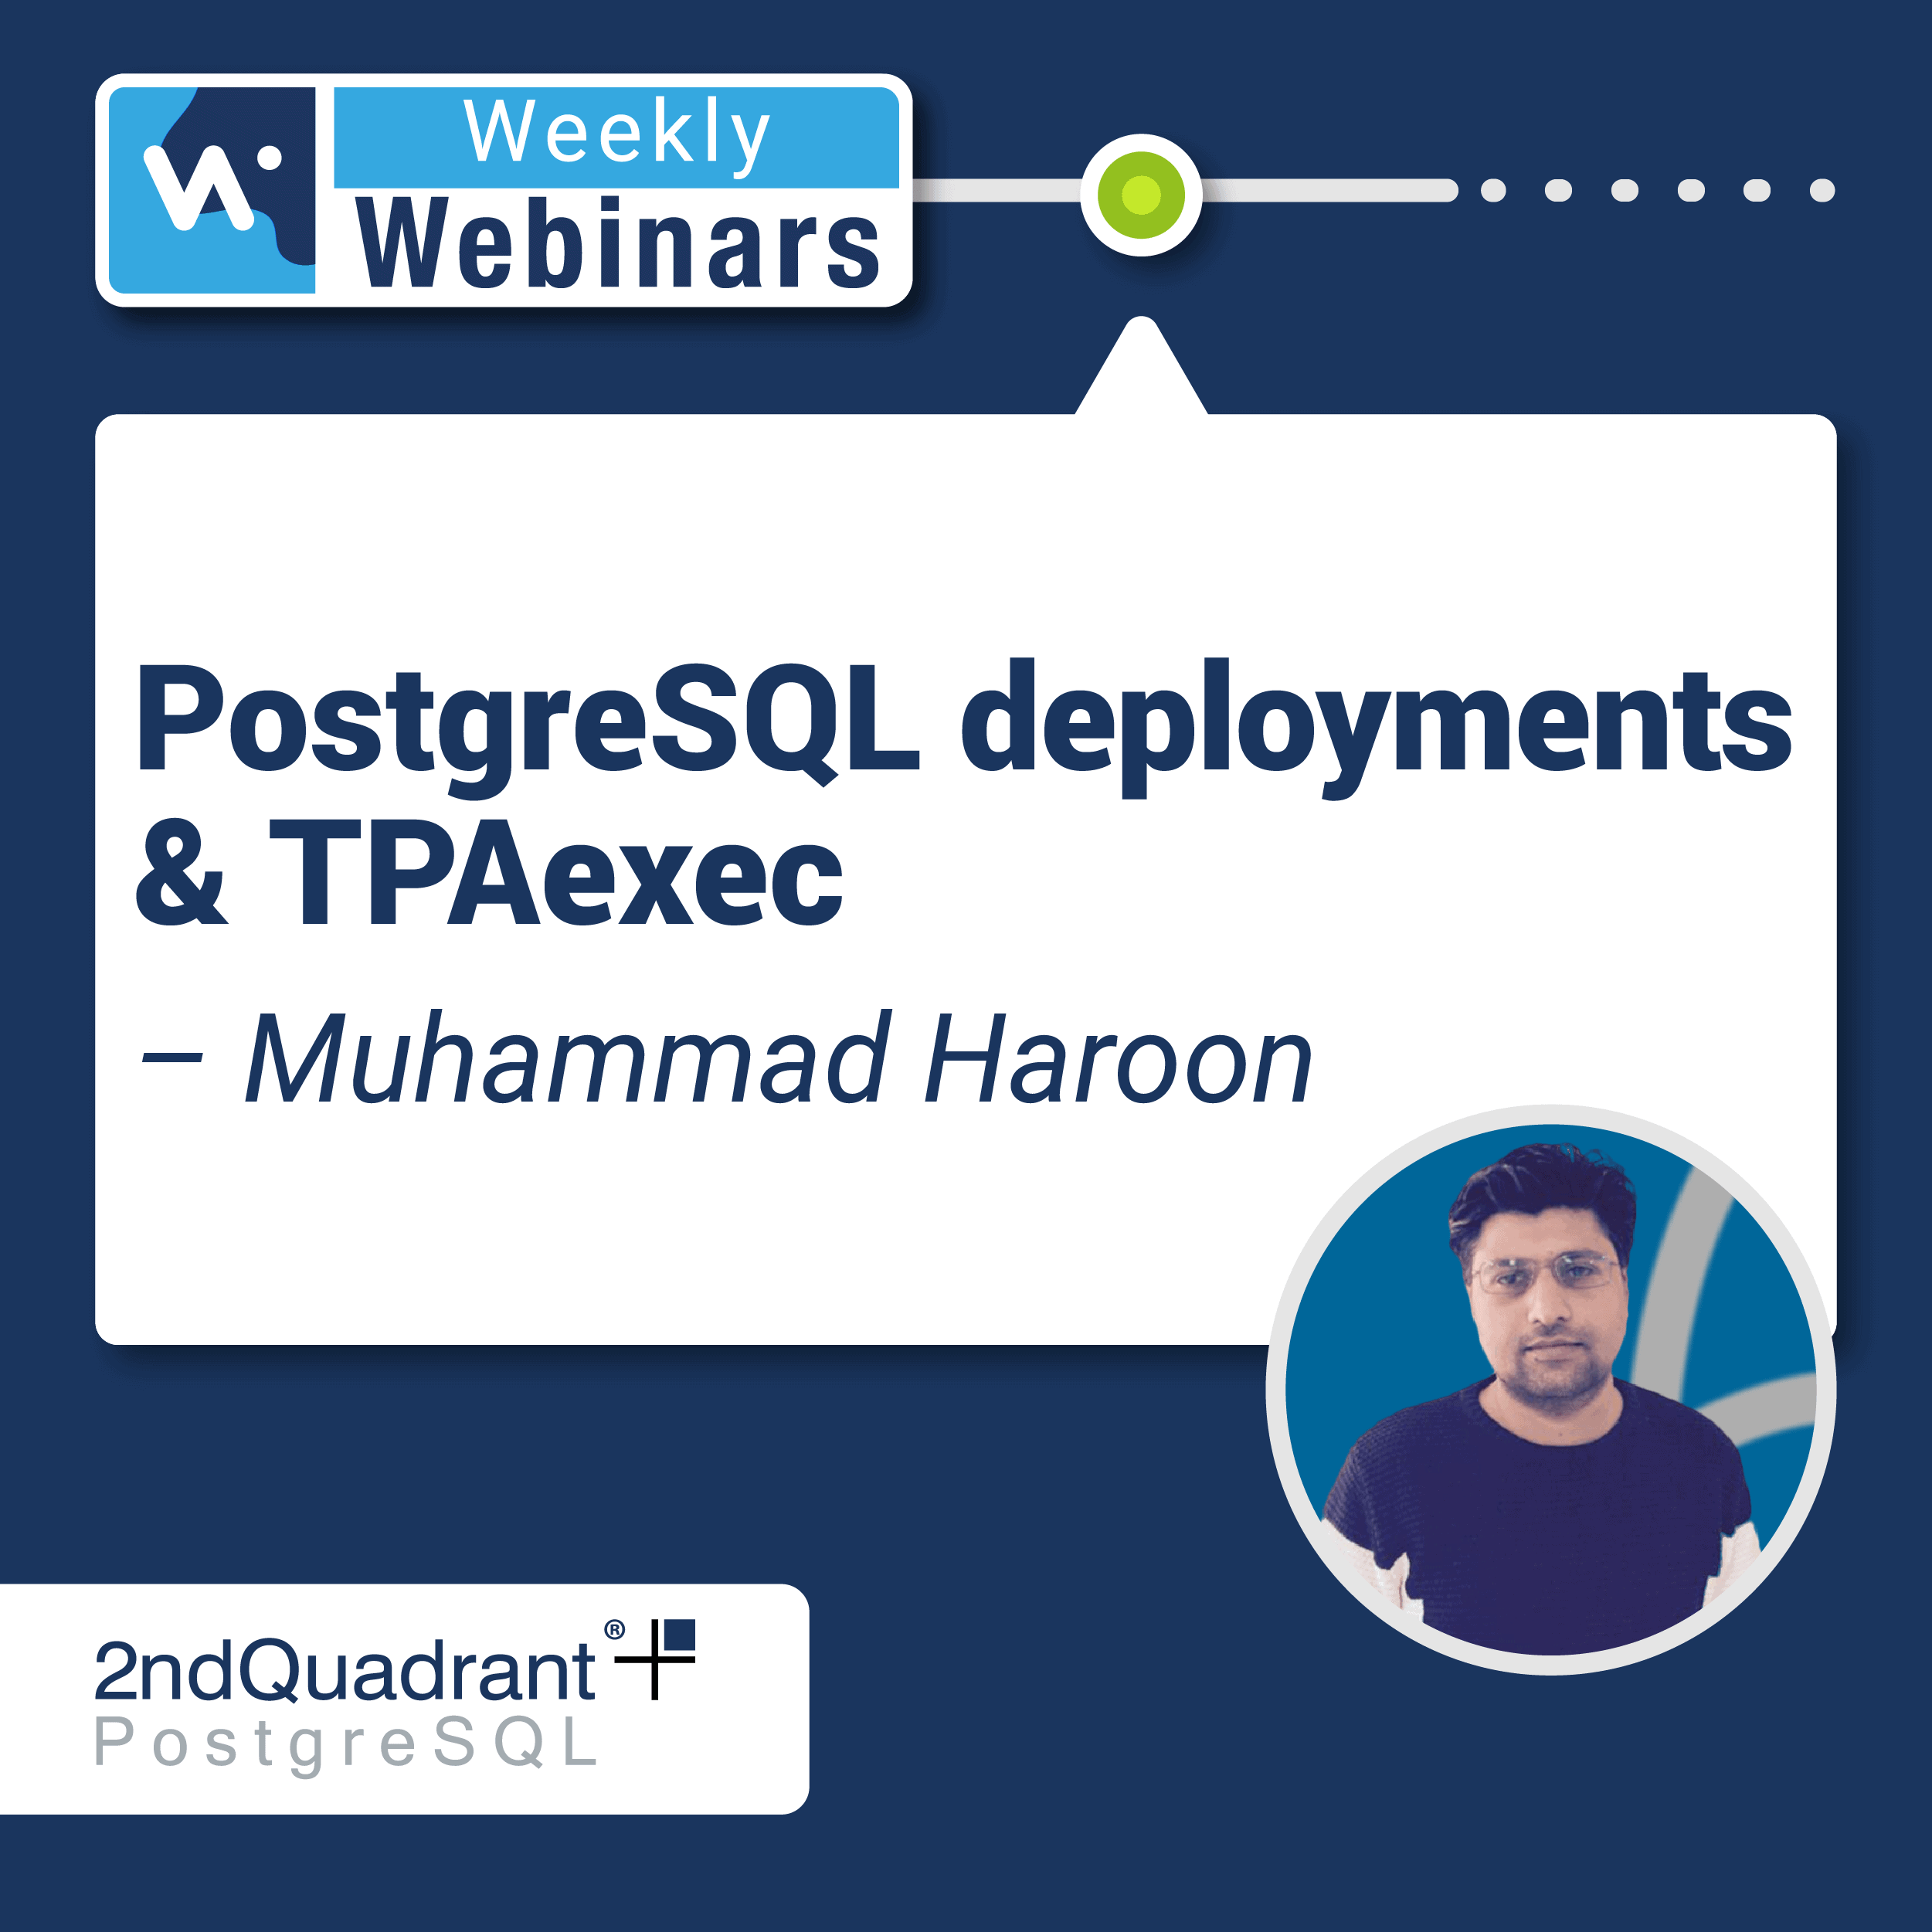 PostgreSQL deployments & TPAexec